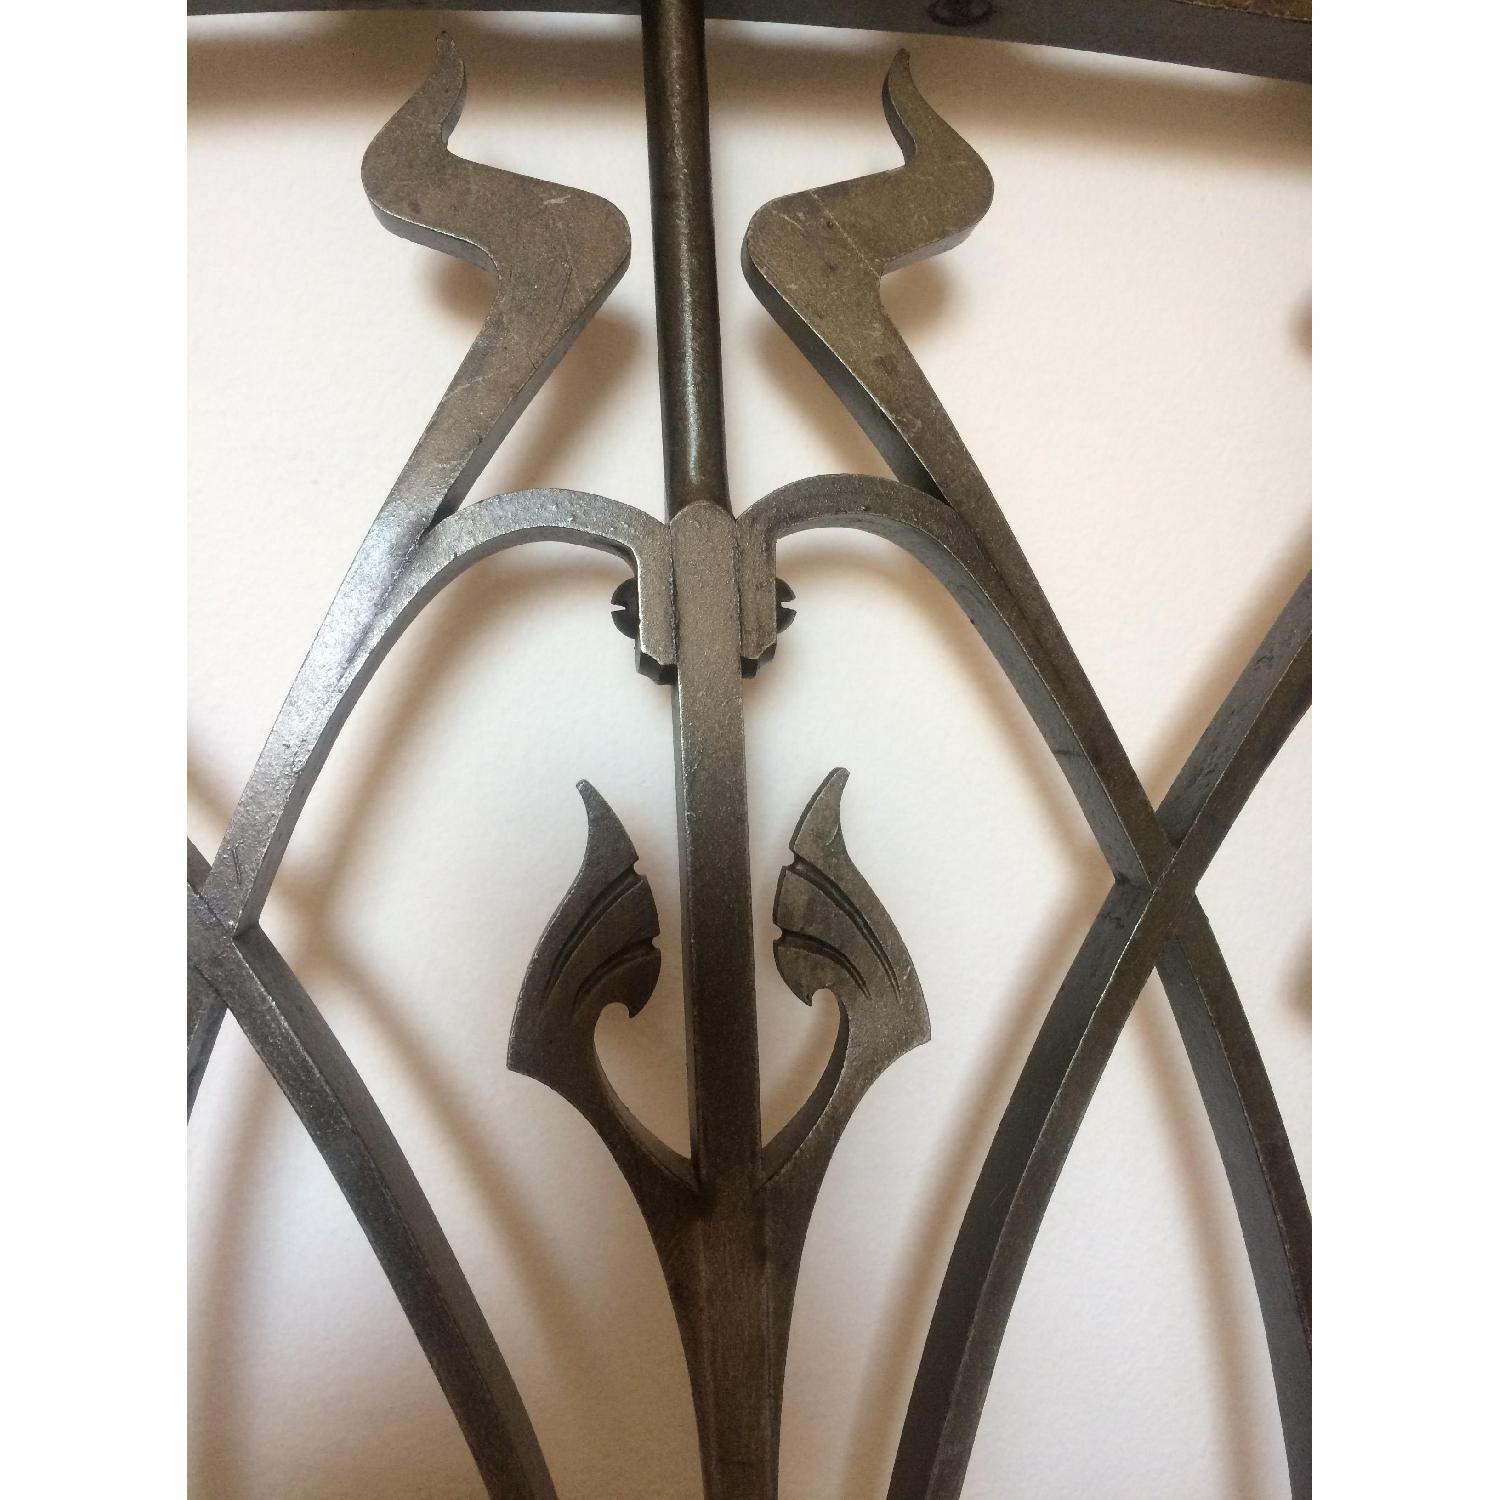 Early 20th-Century French Art Nouveau Wrought Iron and Gilt Bronze Headboard - image-6